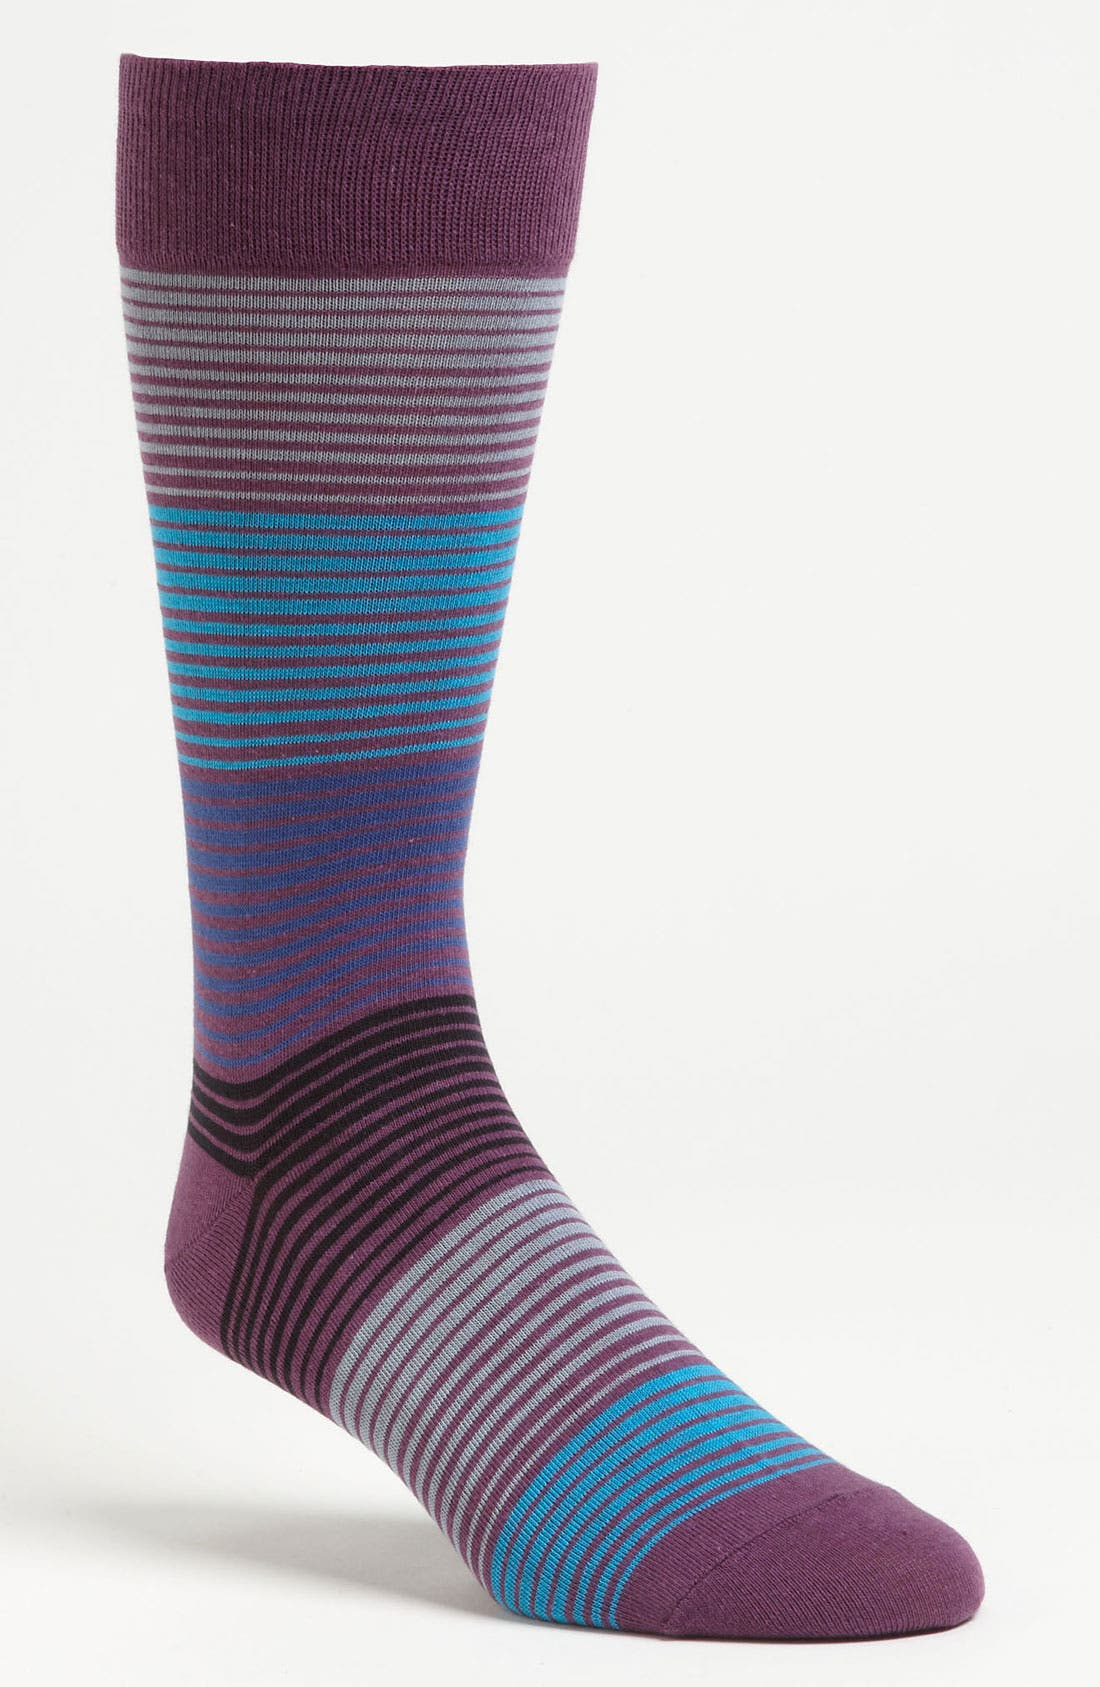 Alternate Image 1 Selected - Cole Haan 'Ombré' Socks (3 for $27)